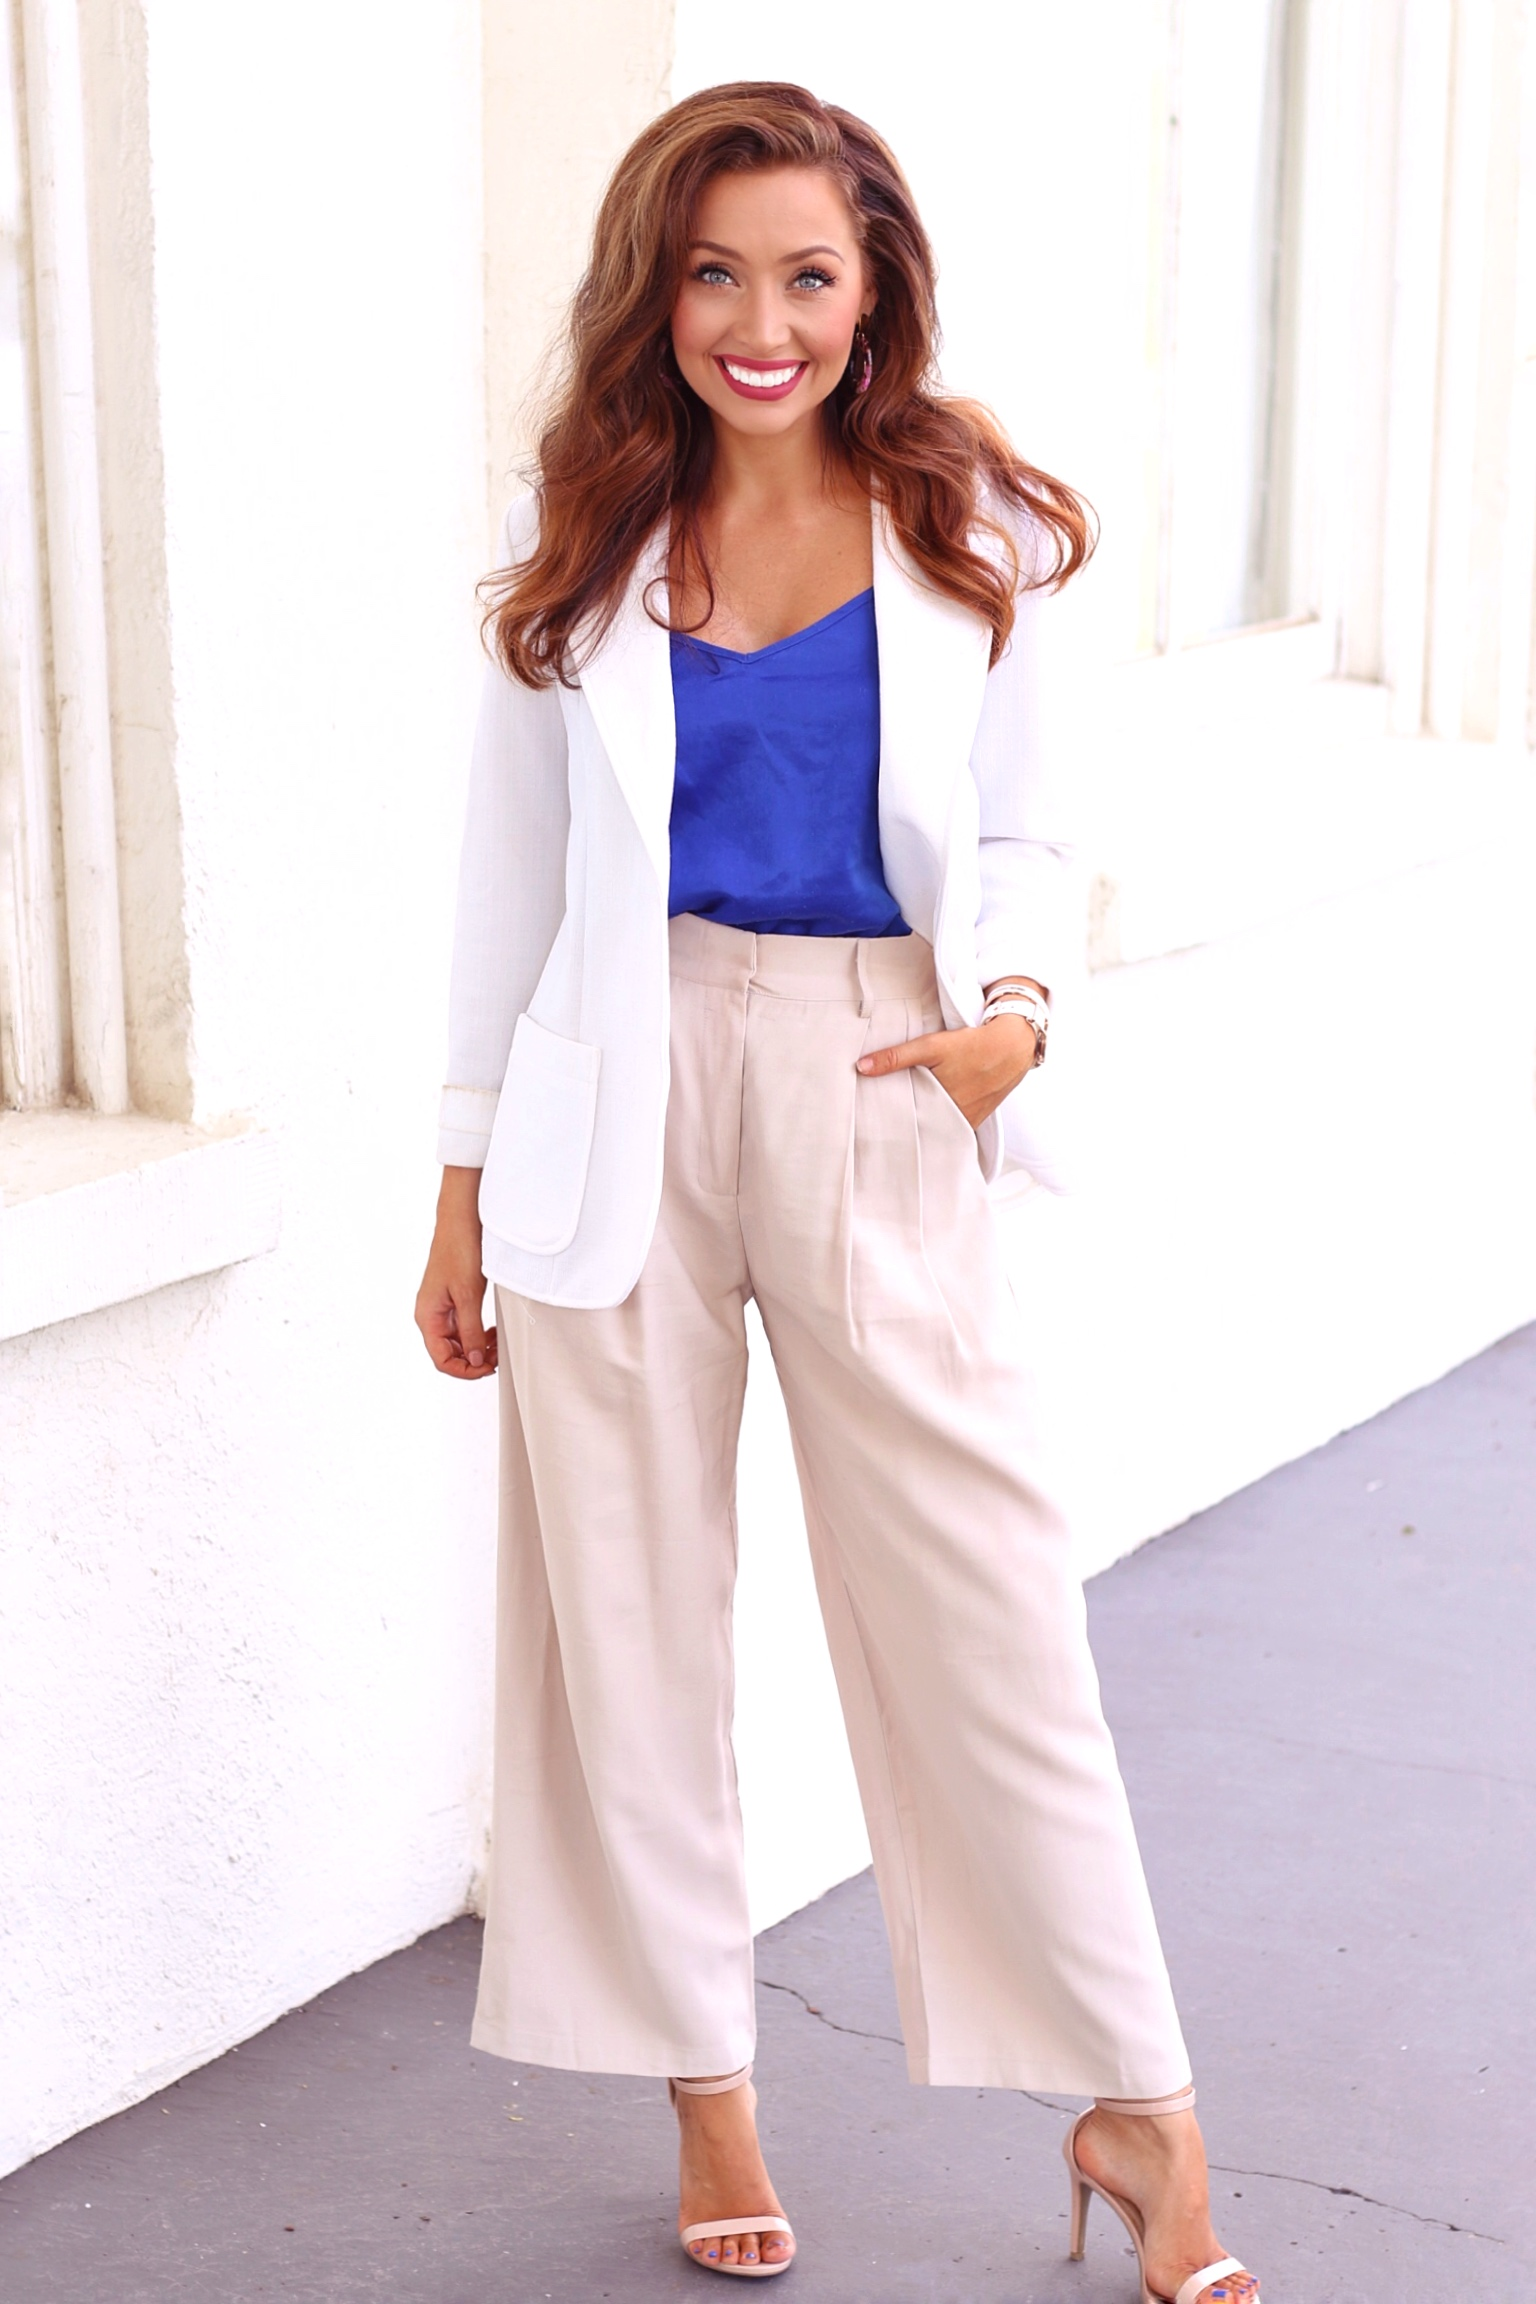 A silk camisole and a sharp blazer tie this look together for the ultimate professional uniform. Some power pumps kick it up a notch even more. This has to be my favorite!